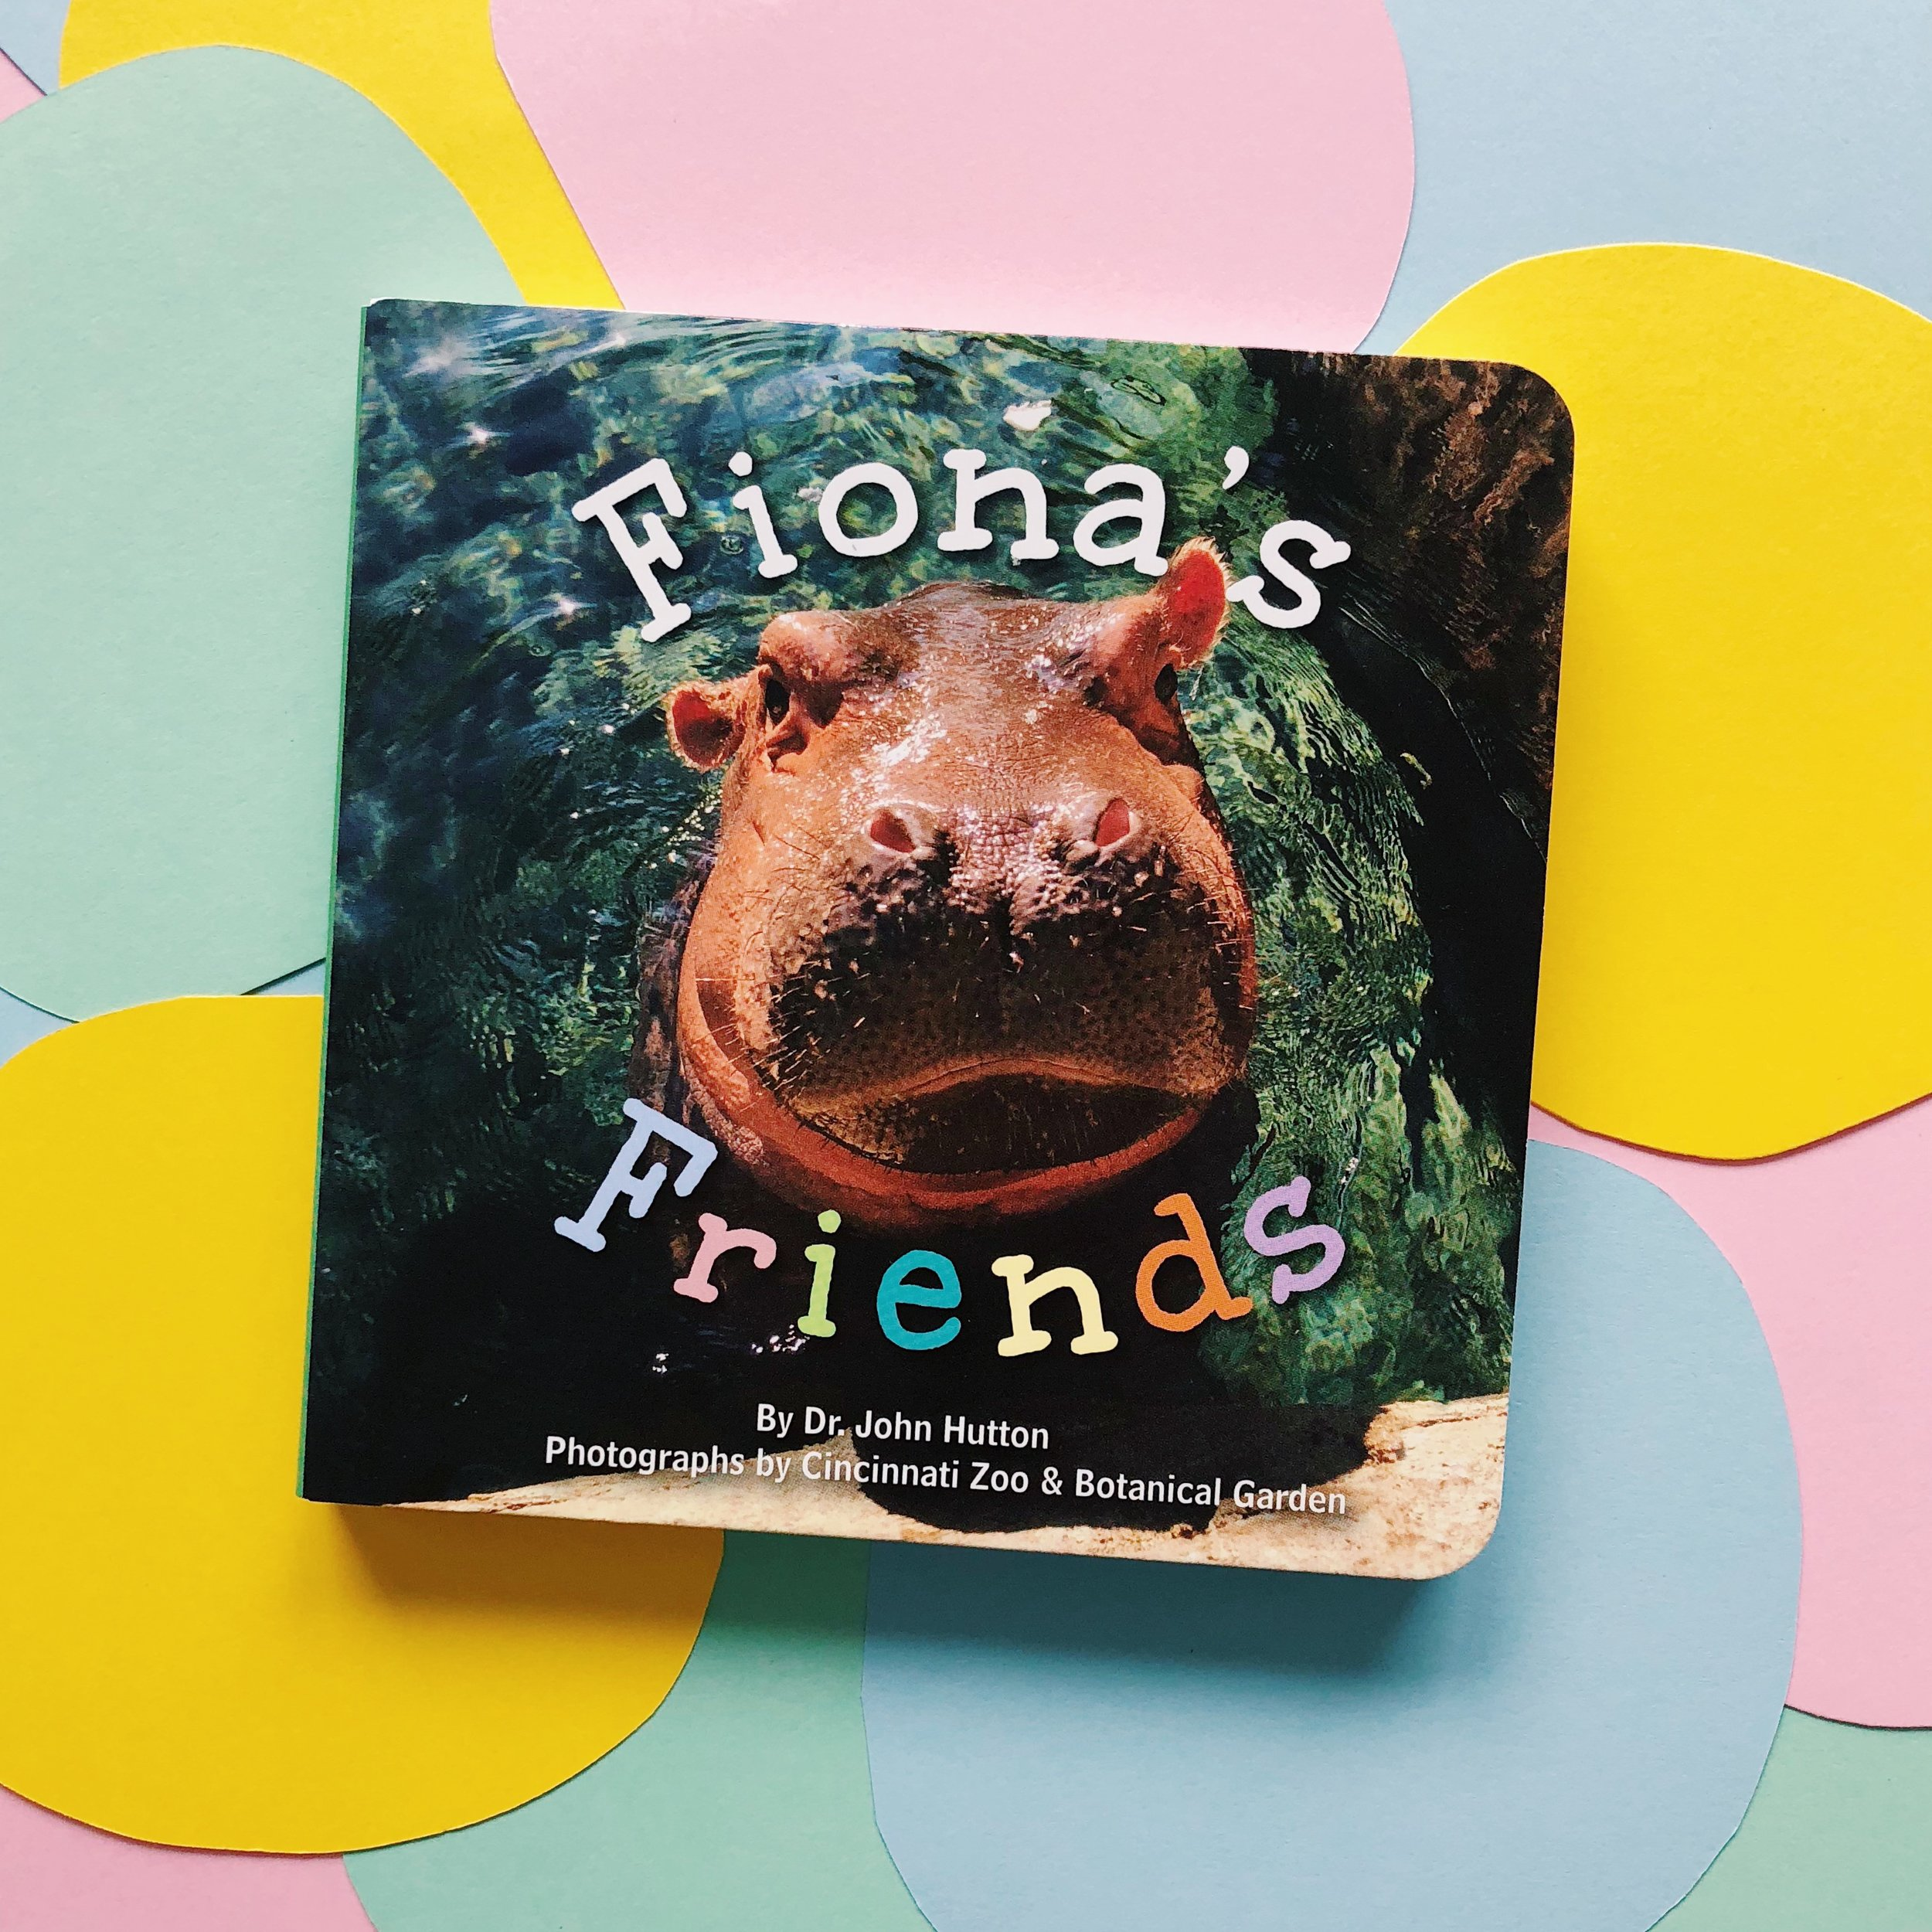 Fiona's Friends     written by Dr. John Hutton and pictures provided by the Cincinnati Zoo & Botanical Garden